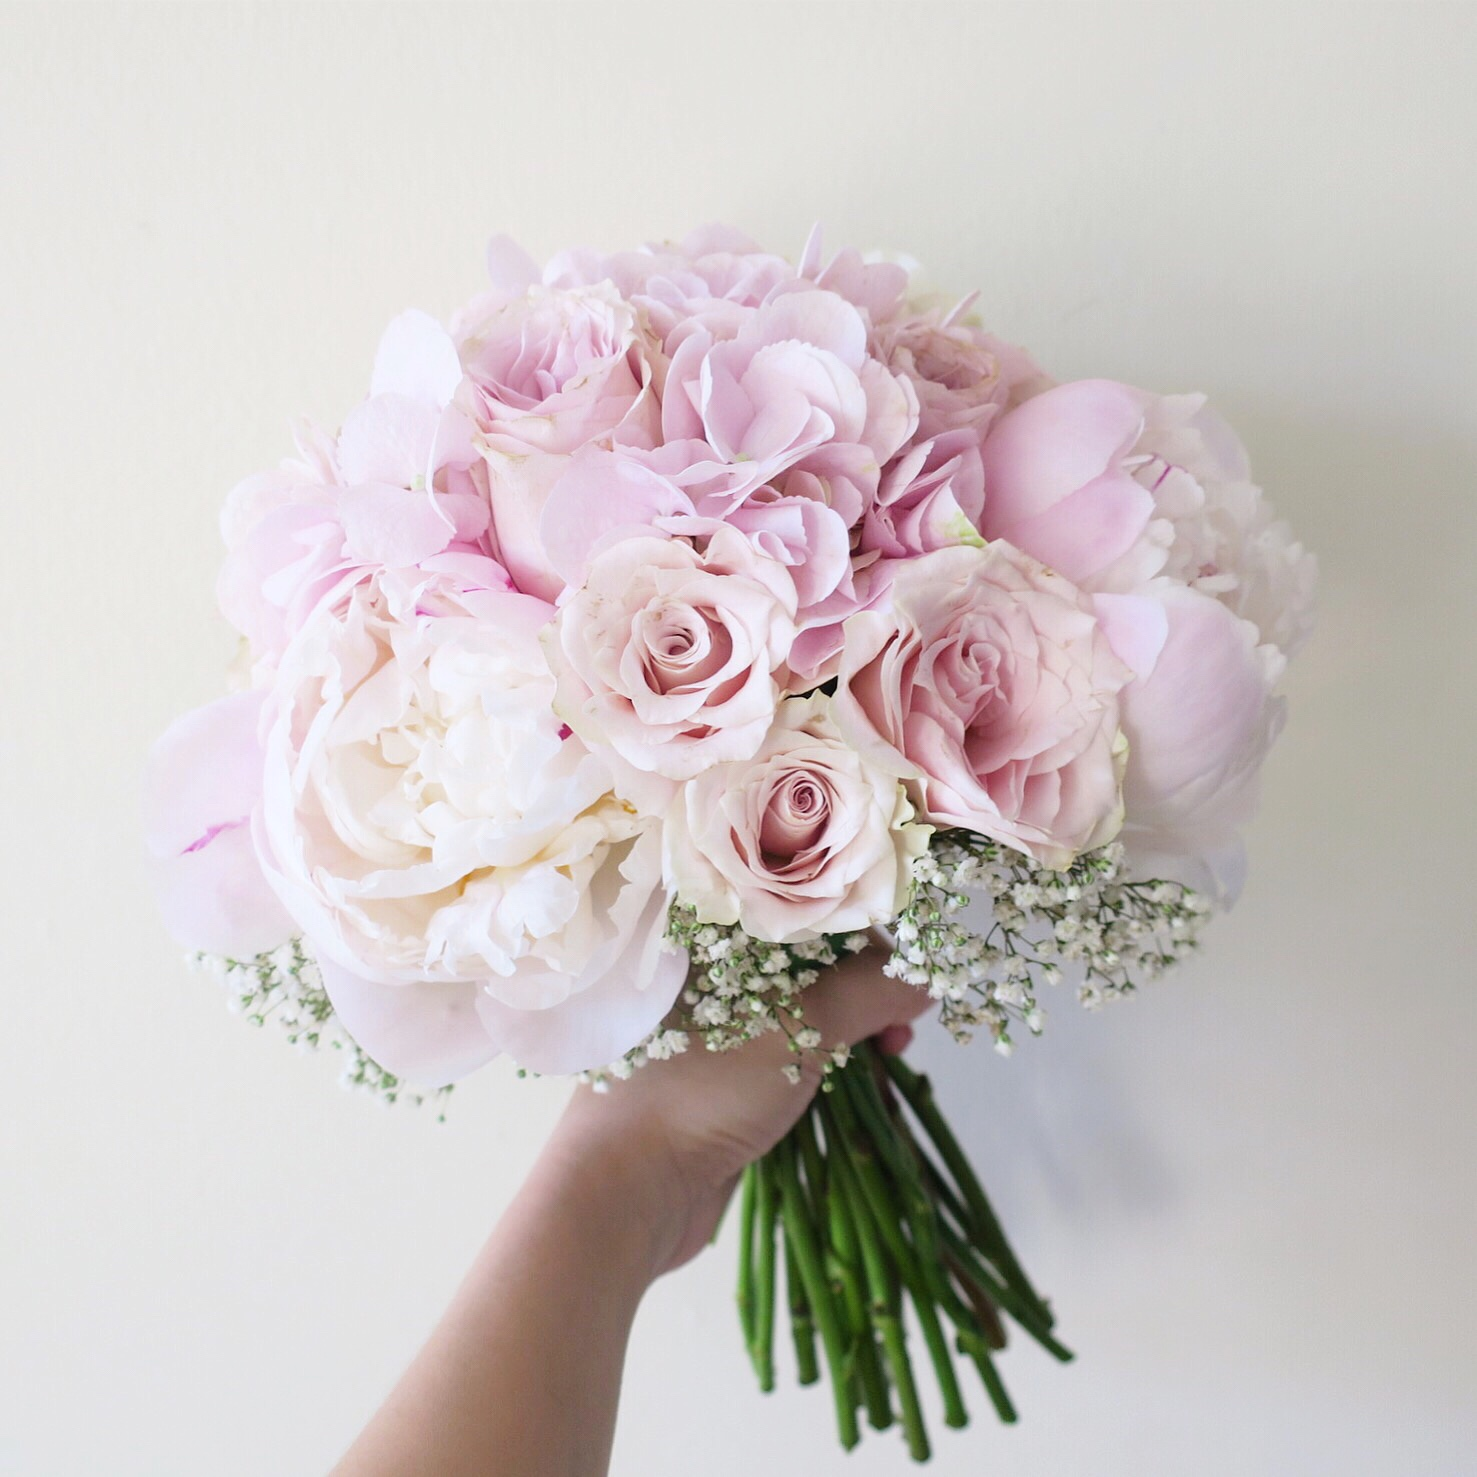 The wedding florist for floral theme decor and bridal bouquet mood img3531g izmirmasajfo